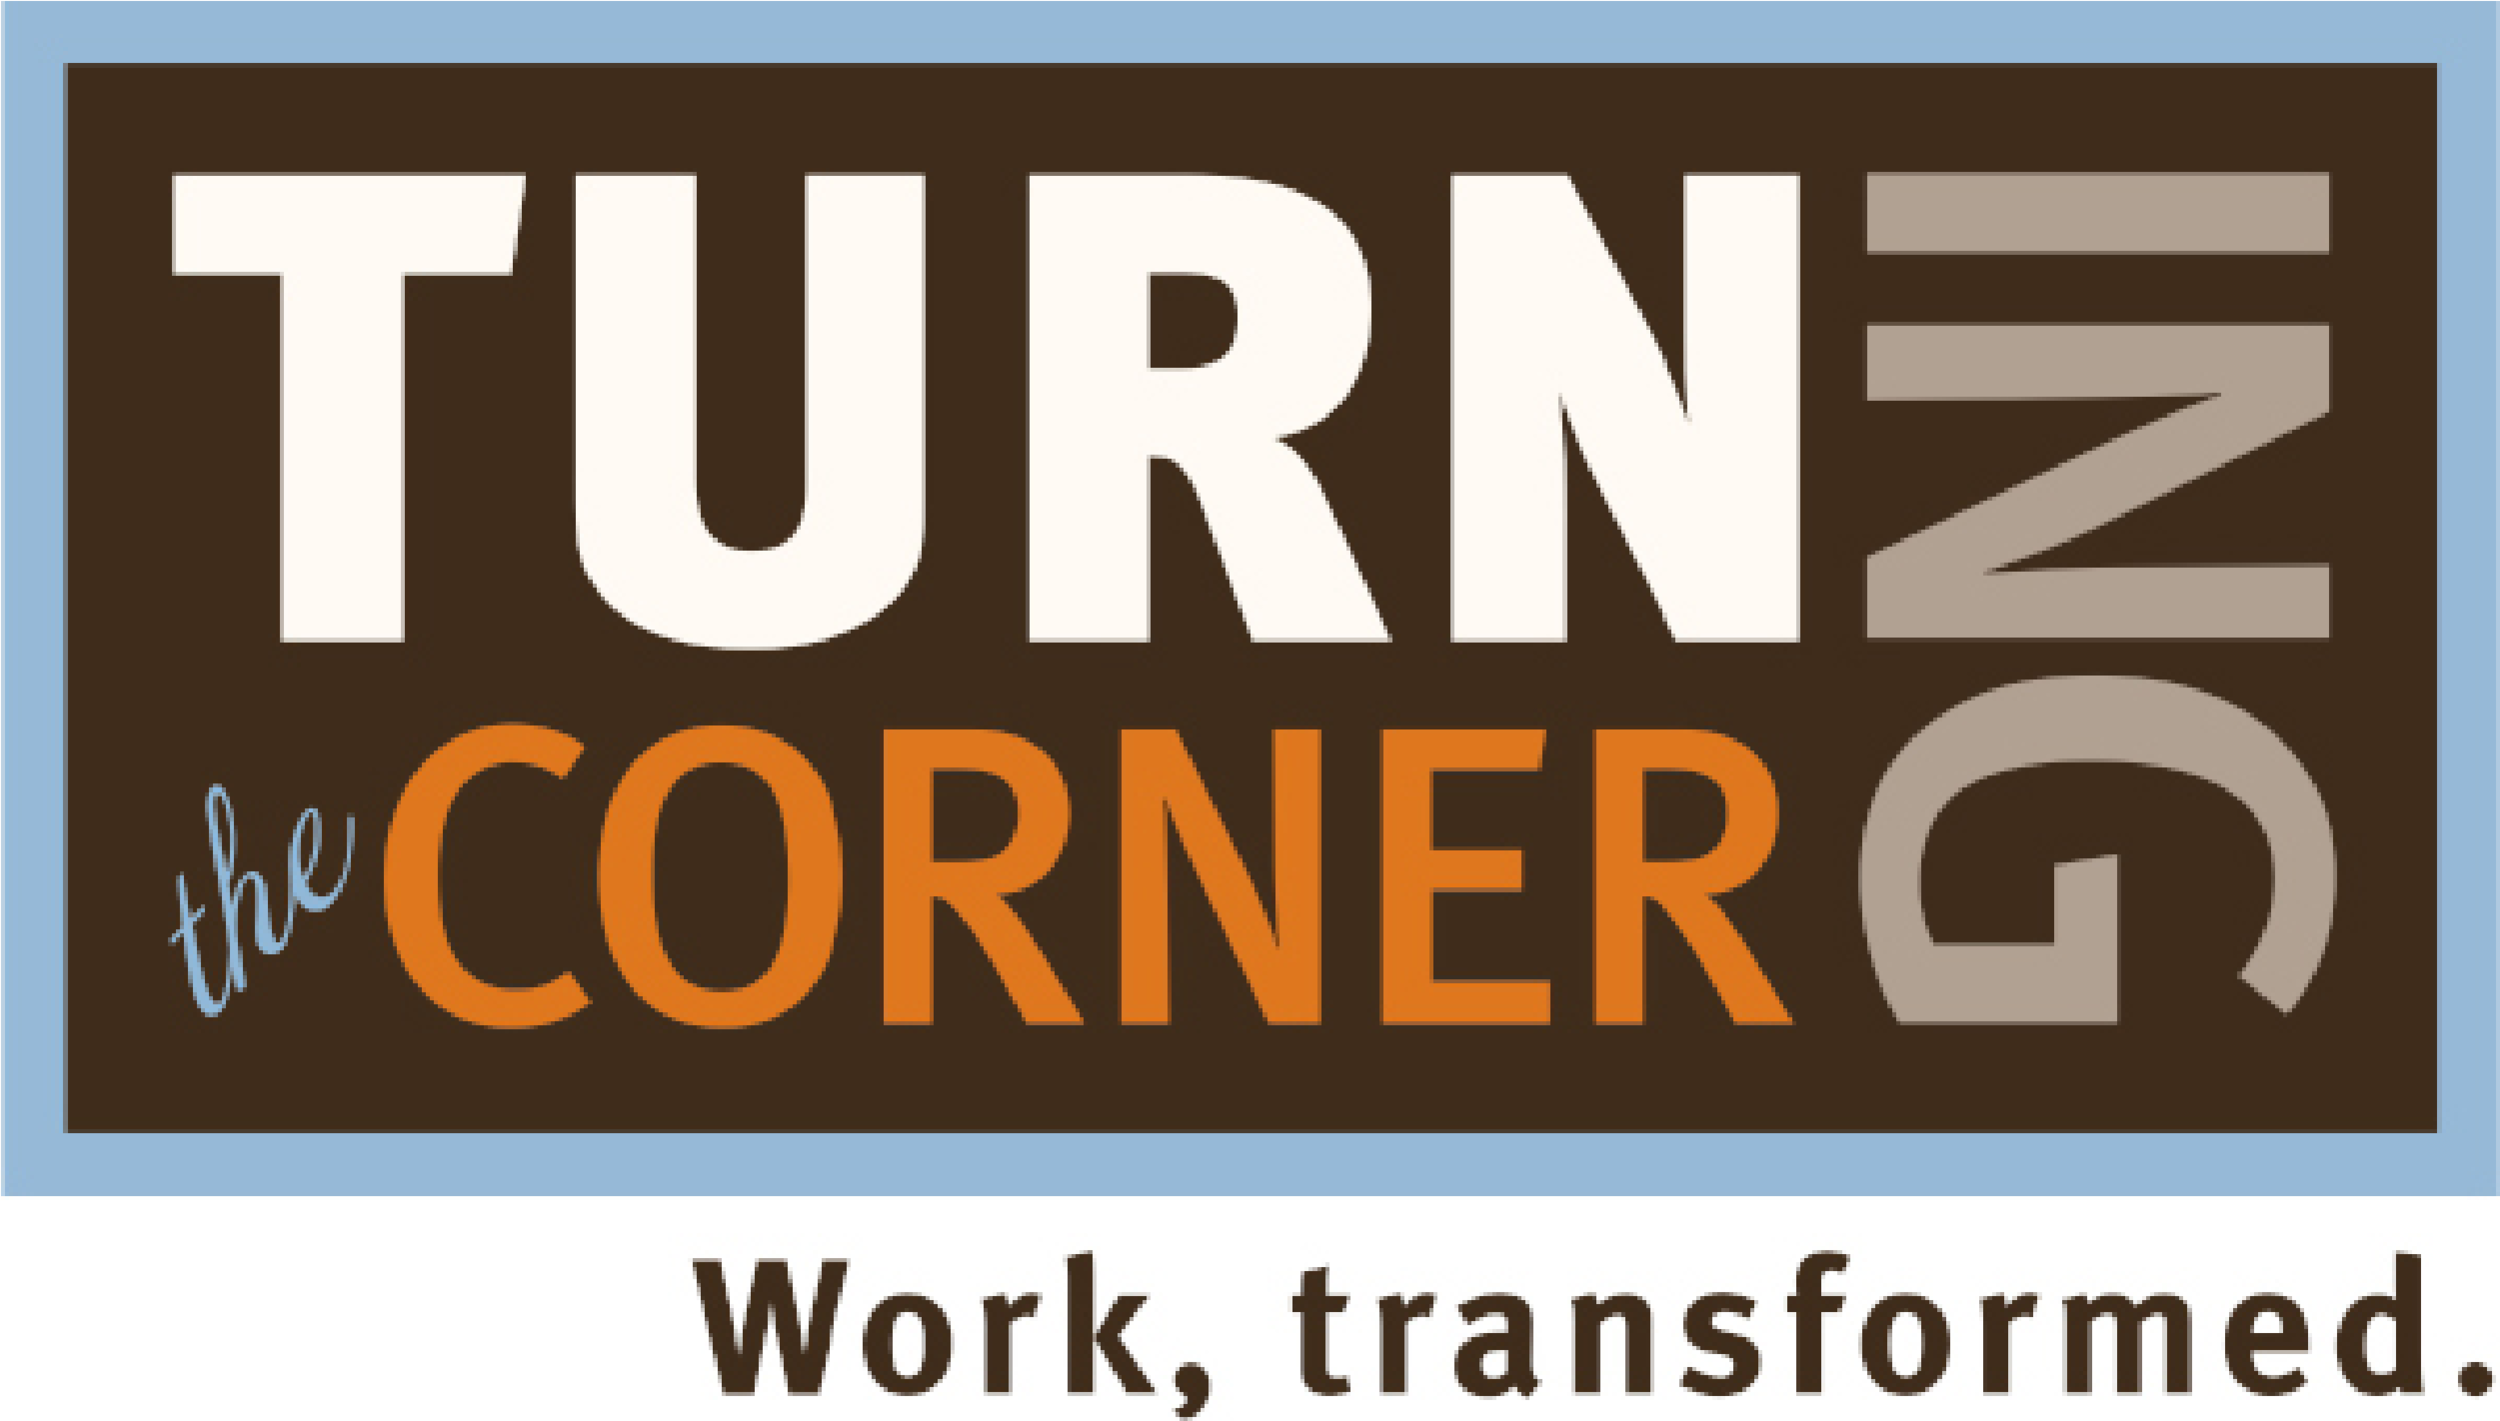 Turning the Corner has decades of experience in recruiting, career counseling, hiring and job searches. They have assembled experts in many fields and disciplines and are quick to help you discover hiring is more than a group of people looking to find you a job or helping you to fill a desk.